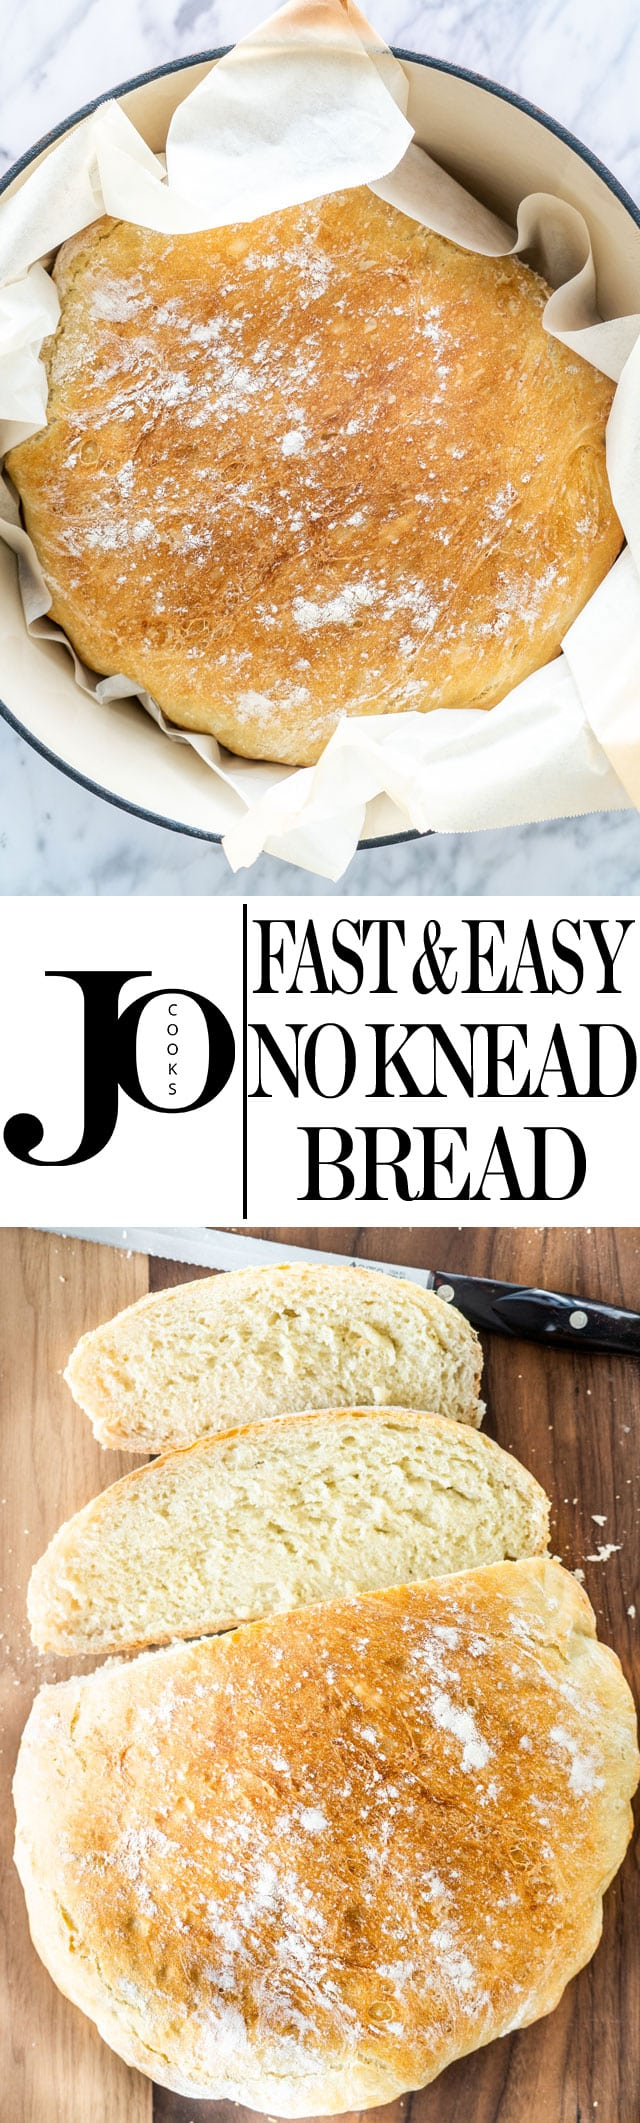 Anyone can can be an amazing baker with this Fast and Easy No Knead Bread recipe! Using only 4 ingredients, learn how to make this delicious loaf that's soft inside and crusty on the outside. #nokneadbread